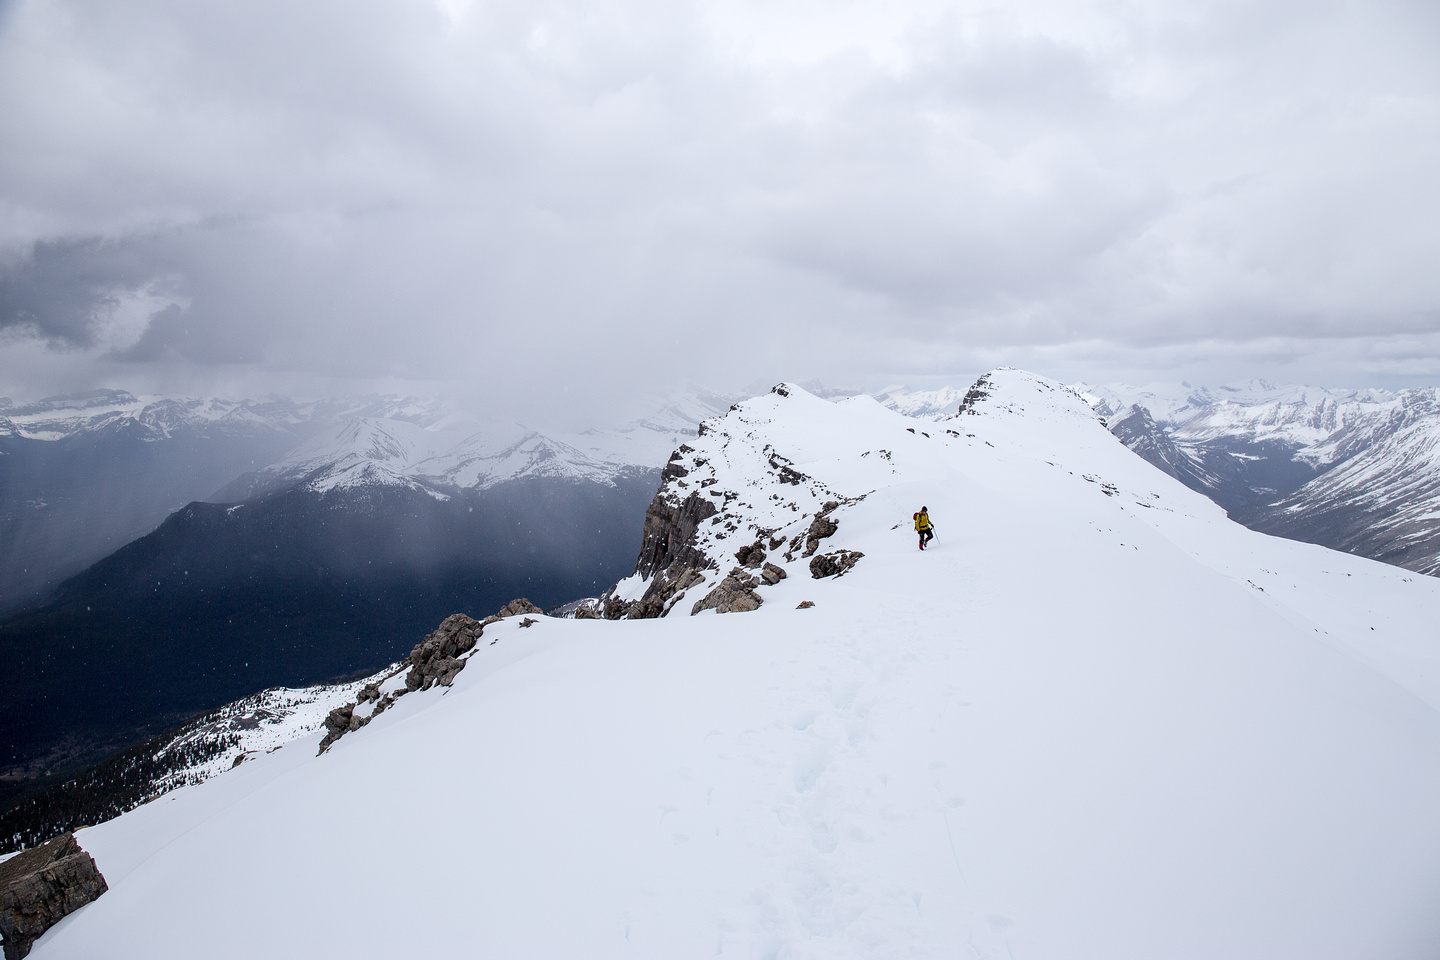 Looking back at the peak and the threatening skies.